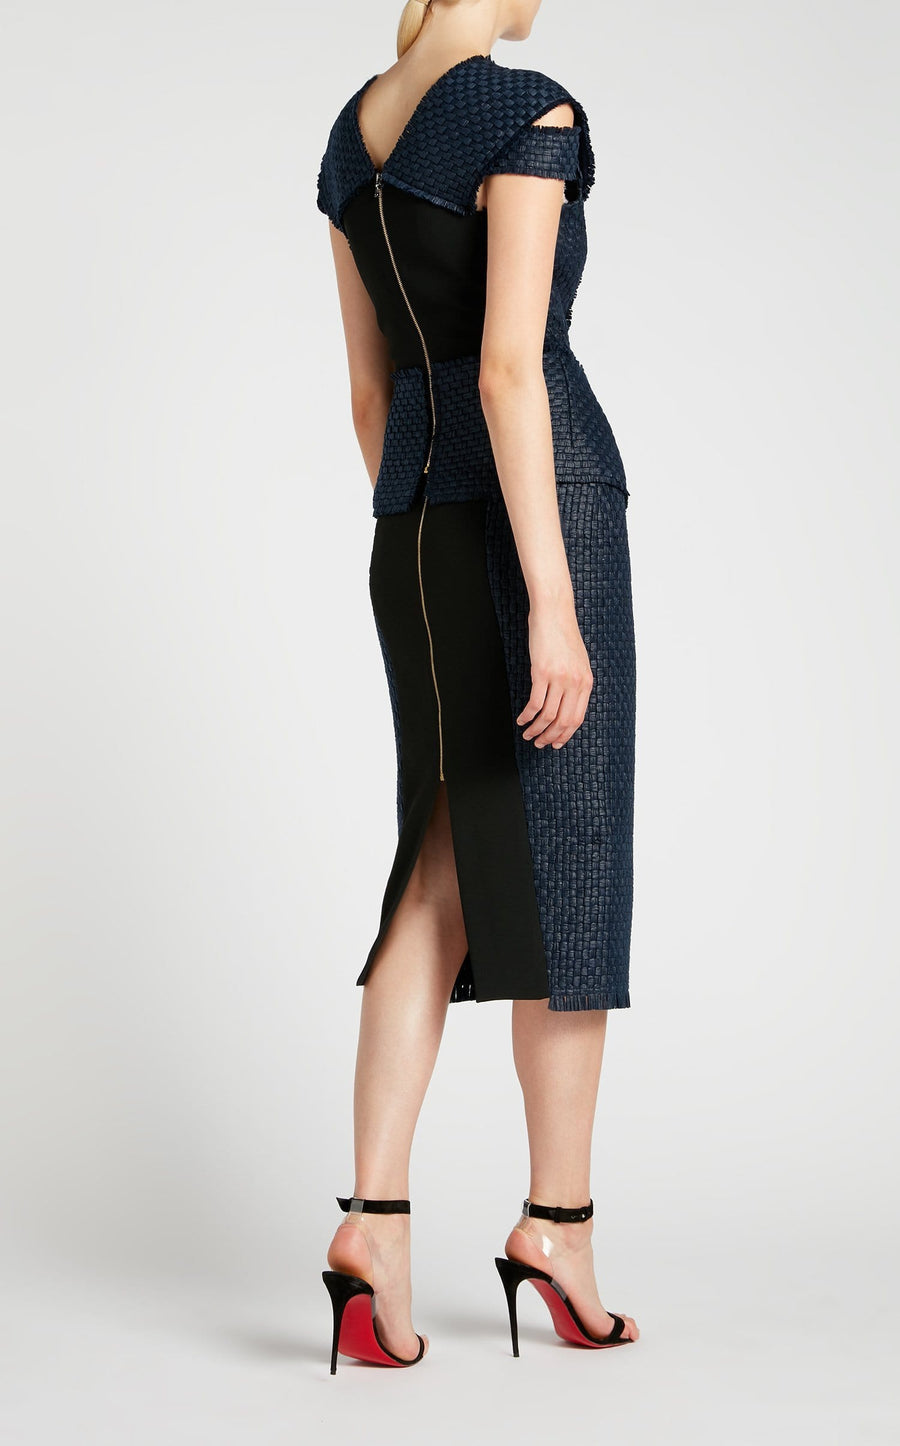 Johnson Top In Navy from Roland Mouret